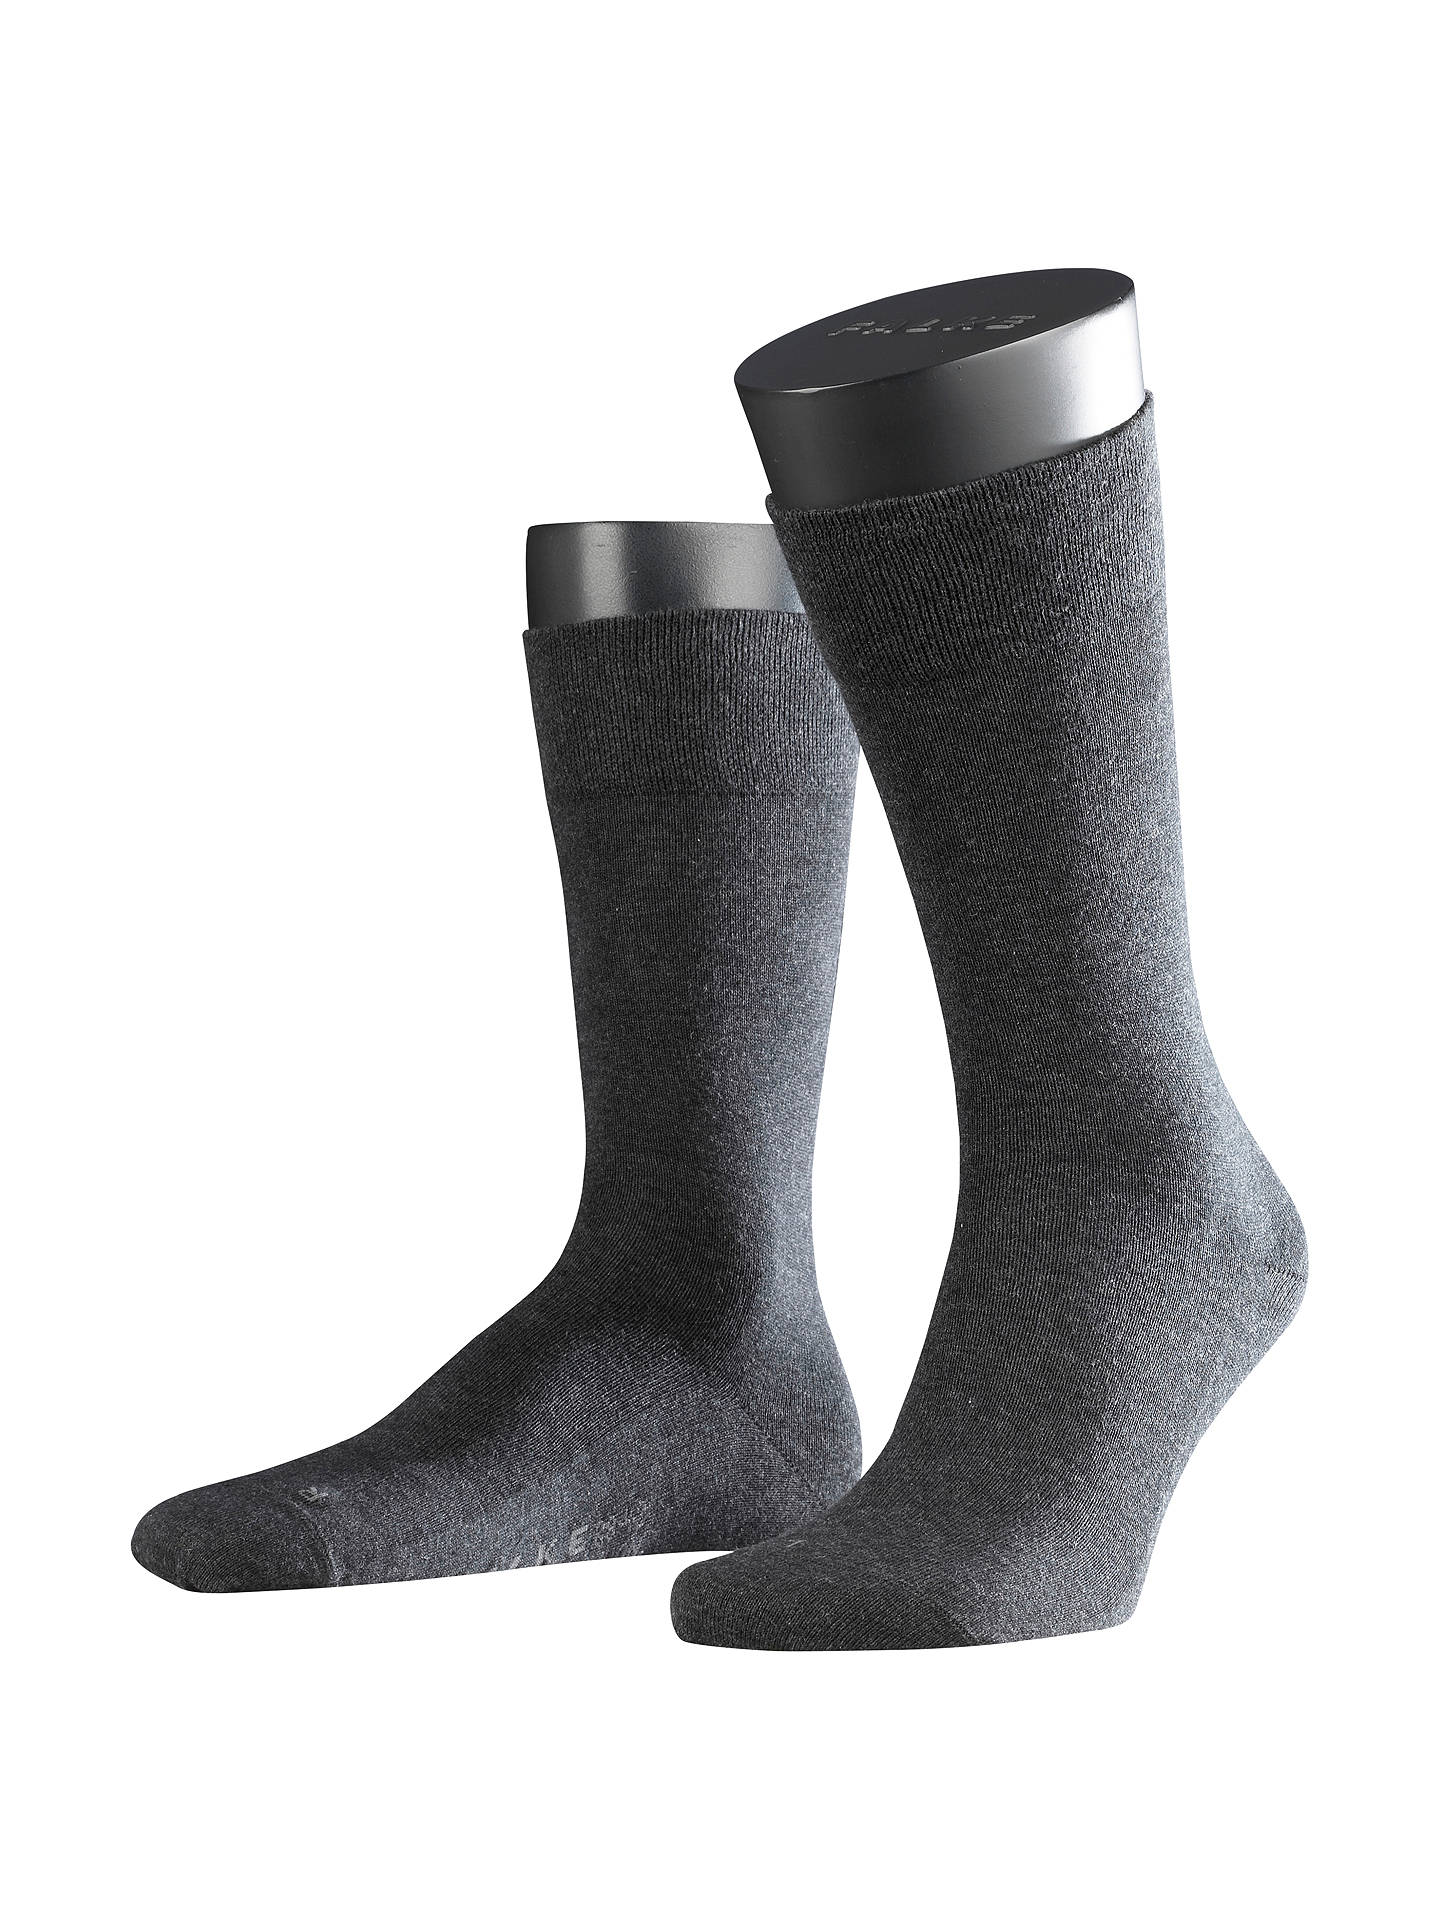 BuyFALKE Airport Short Socks, Charcoal Melange, S Online at johnlewis.com